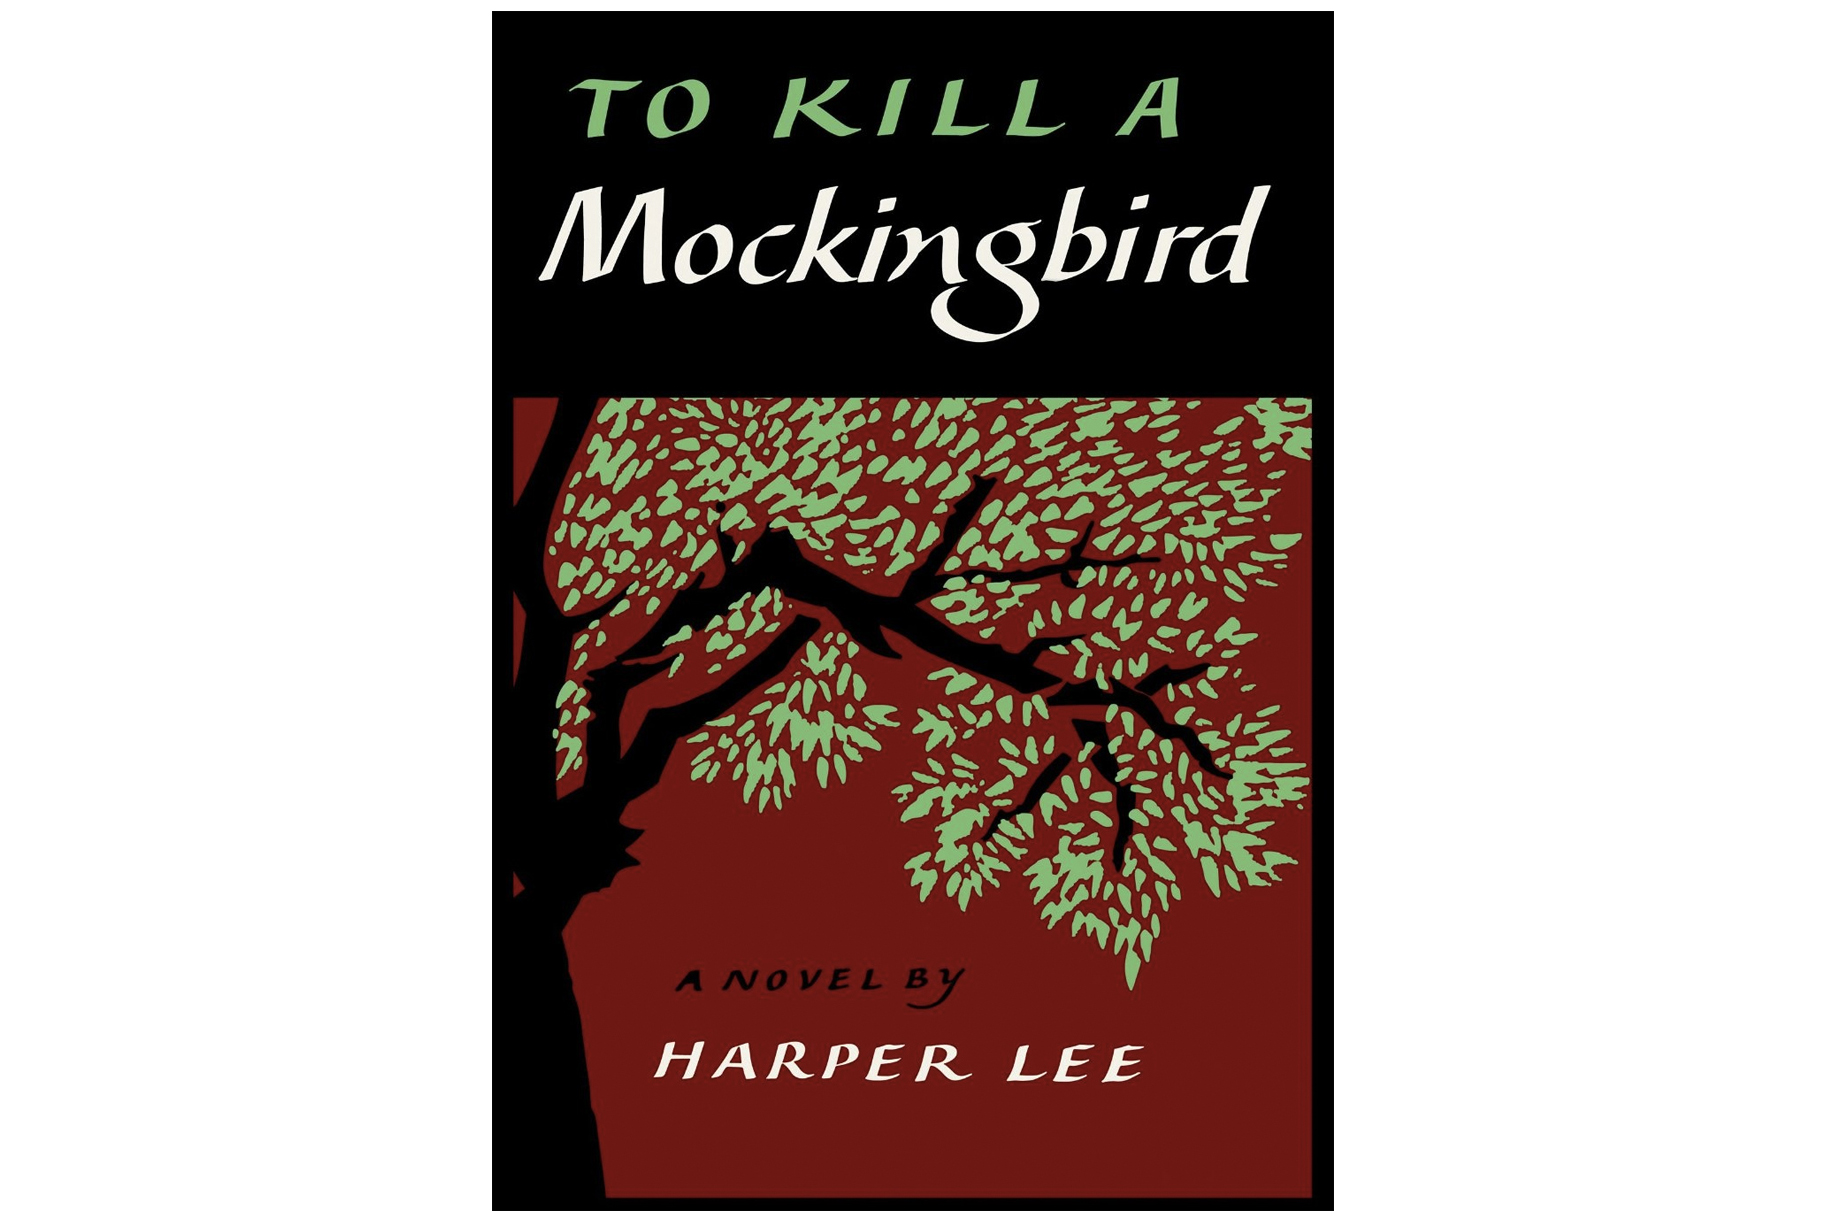 To Kill A Mockingbird by Harper Lee (BRIDGE BOOKS)